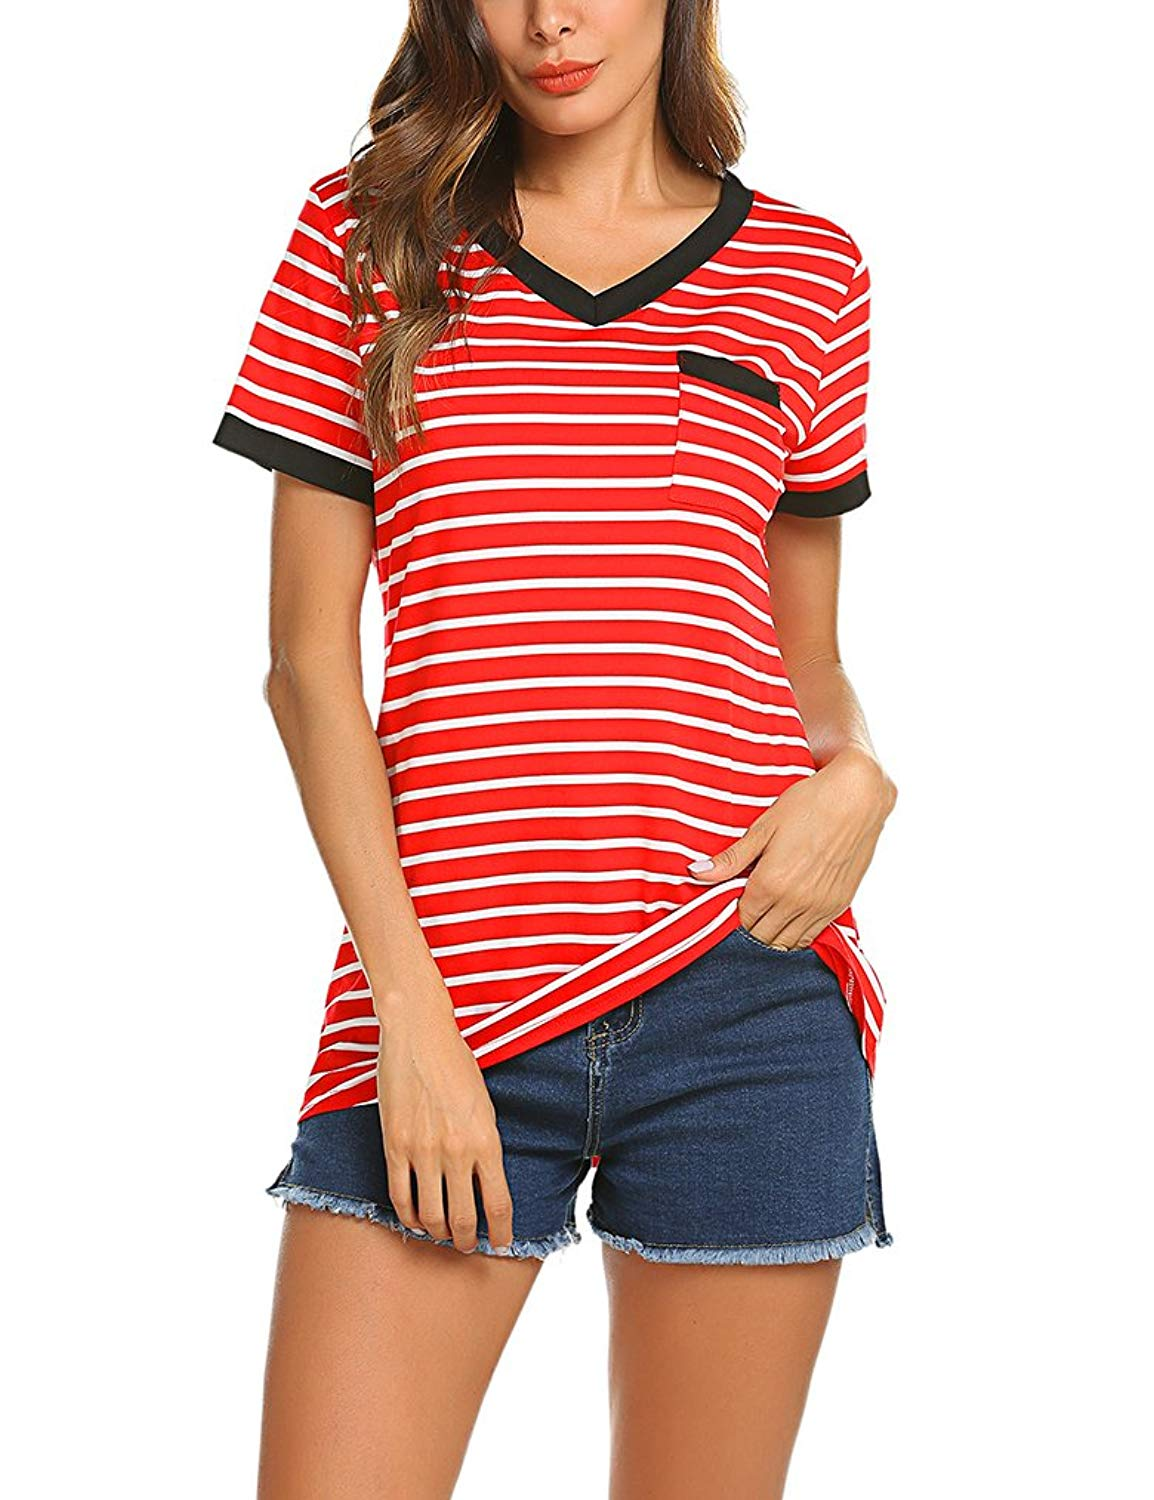 Queensheero Womens Casual Striped Shirt V Neck Short Sleeve Trimmed T-shirt Top Blouse with Pocket